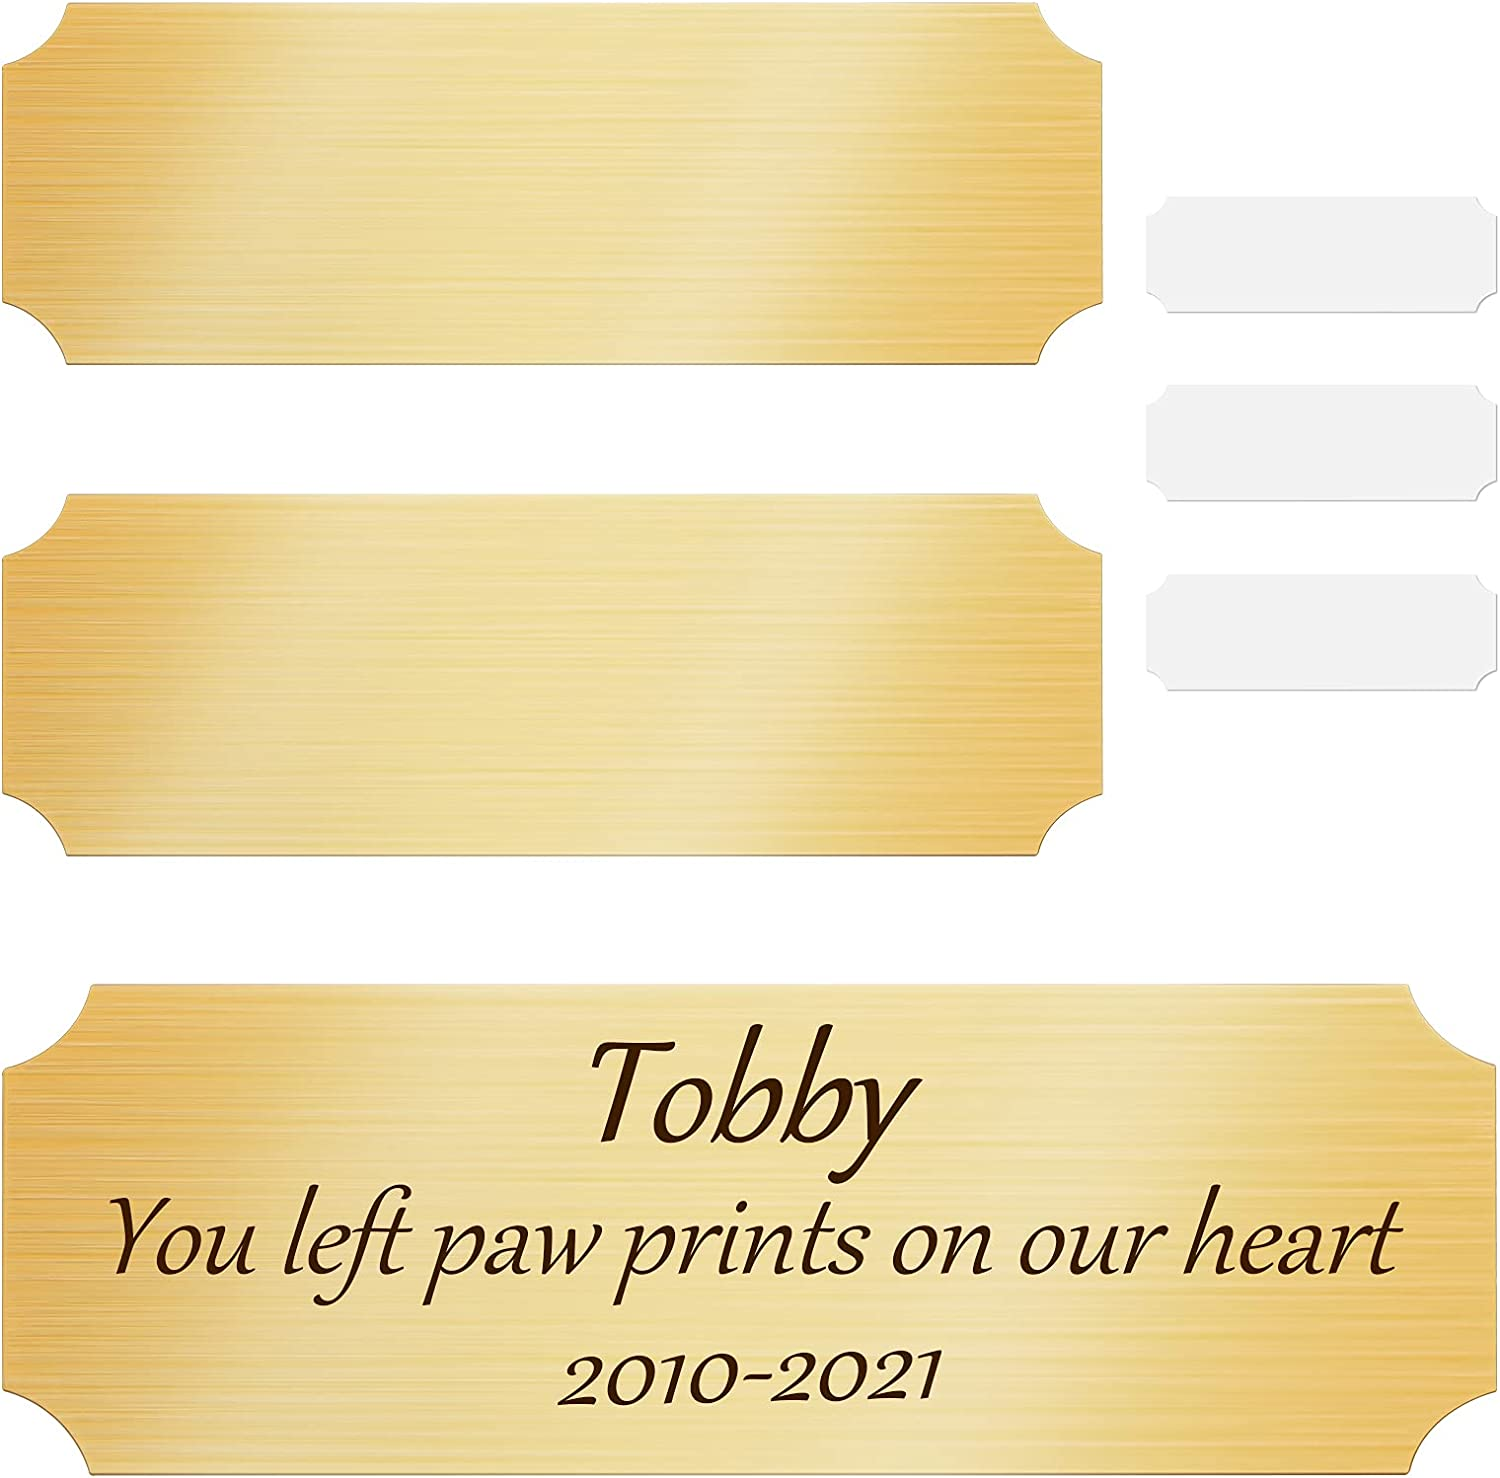 3 Pieces Sublimation Personalized Name Plates DIY Brush Gold Aluminium Picture Frame Name Plate Art Picture Name Label Tag with Double-Sided Stickers for Indoor Use, 3 x 1 Inch